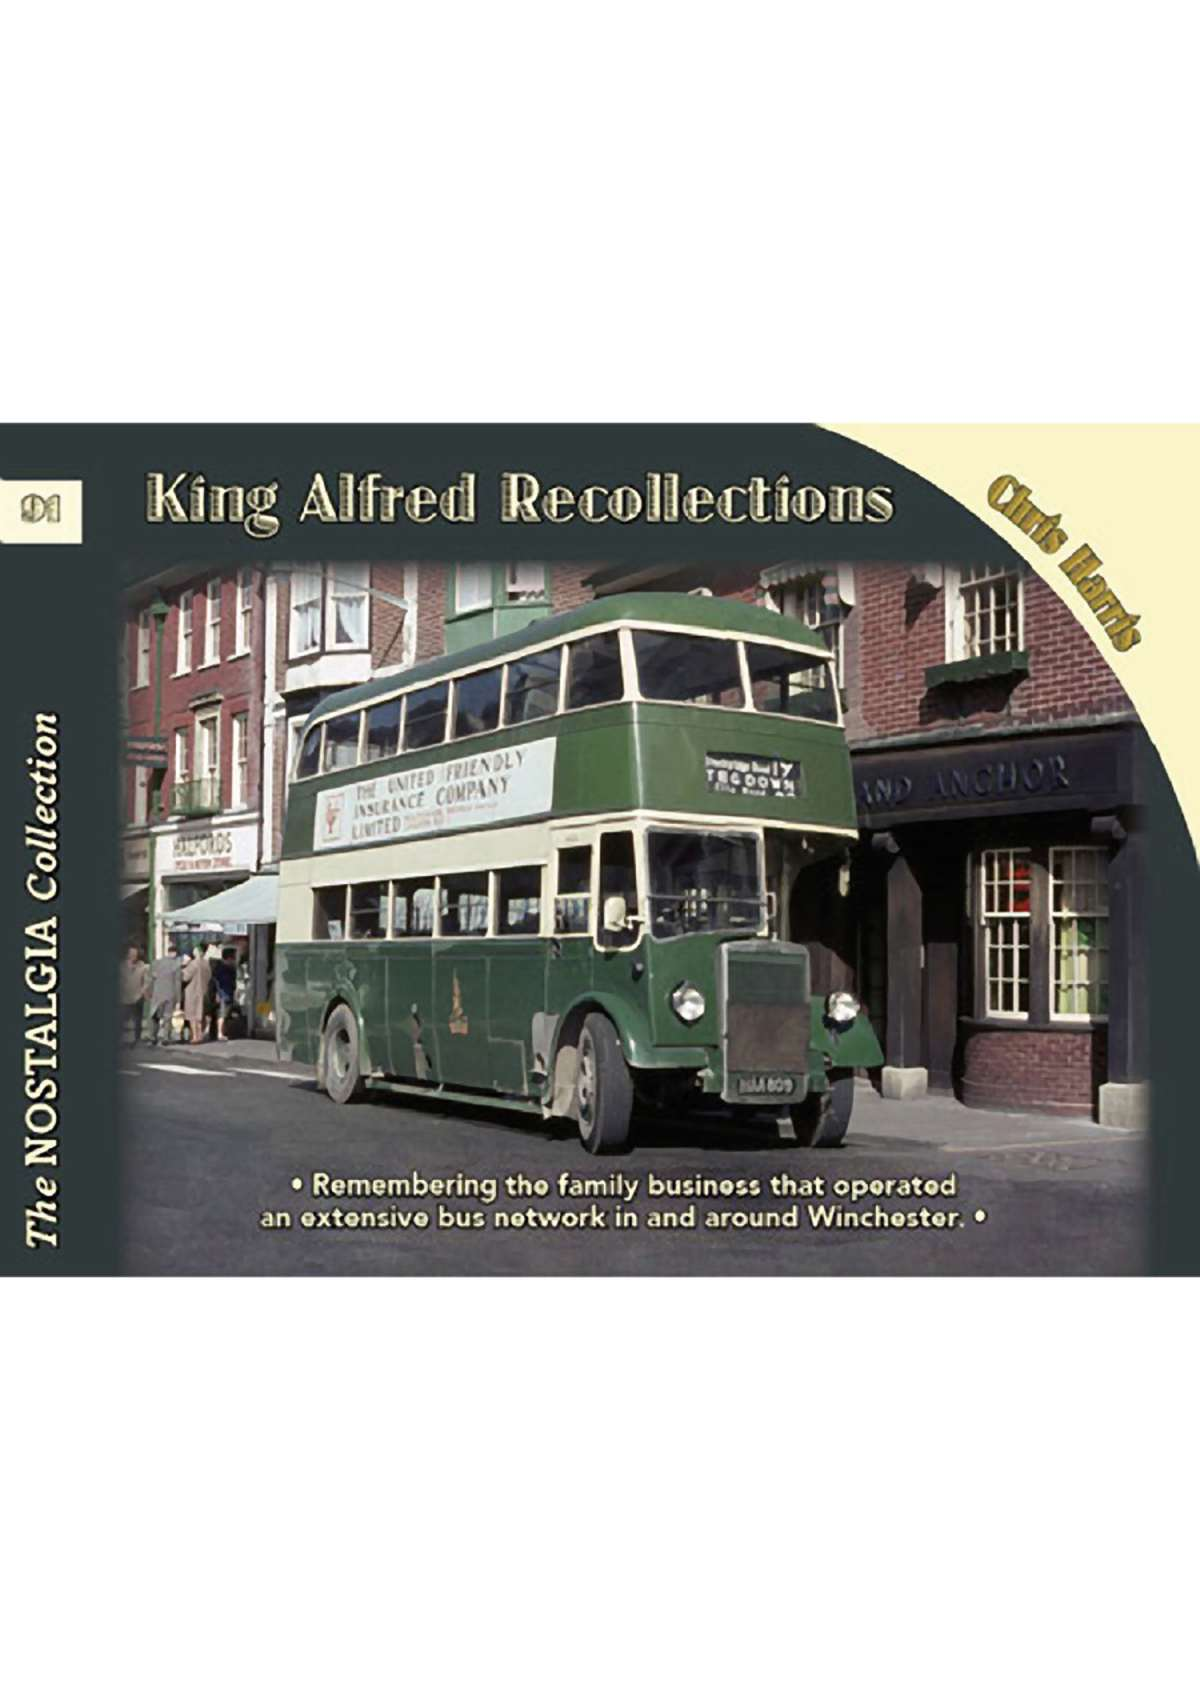 5270 King Alfred Buses, Coaches, Recollections